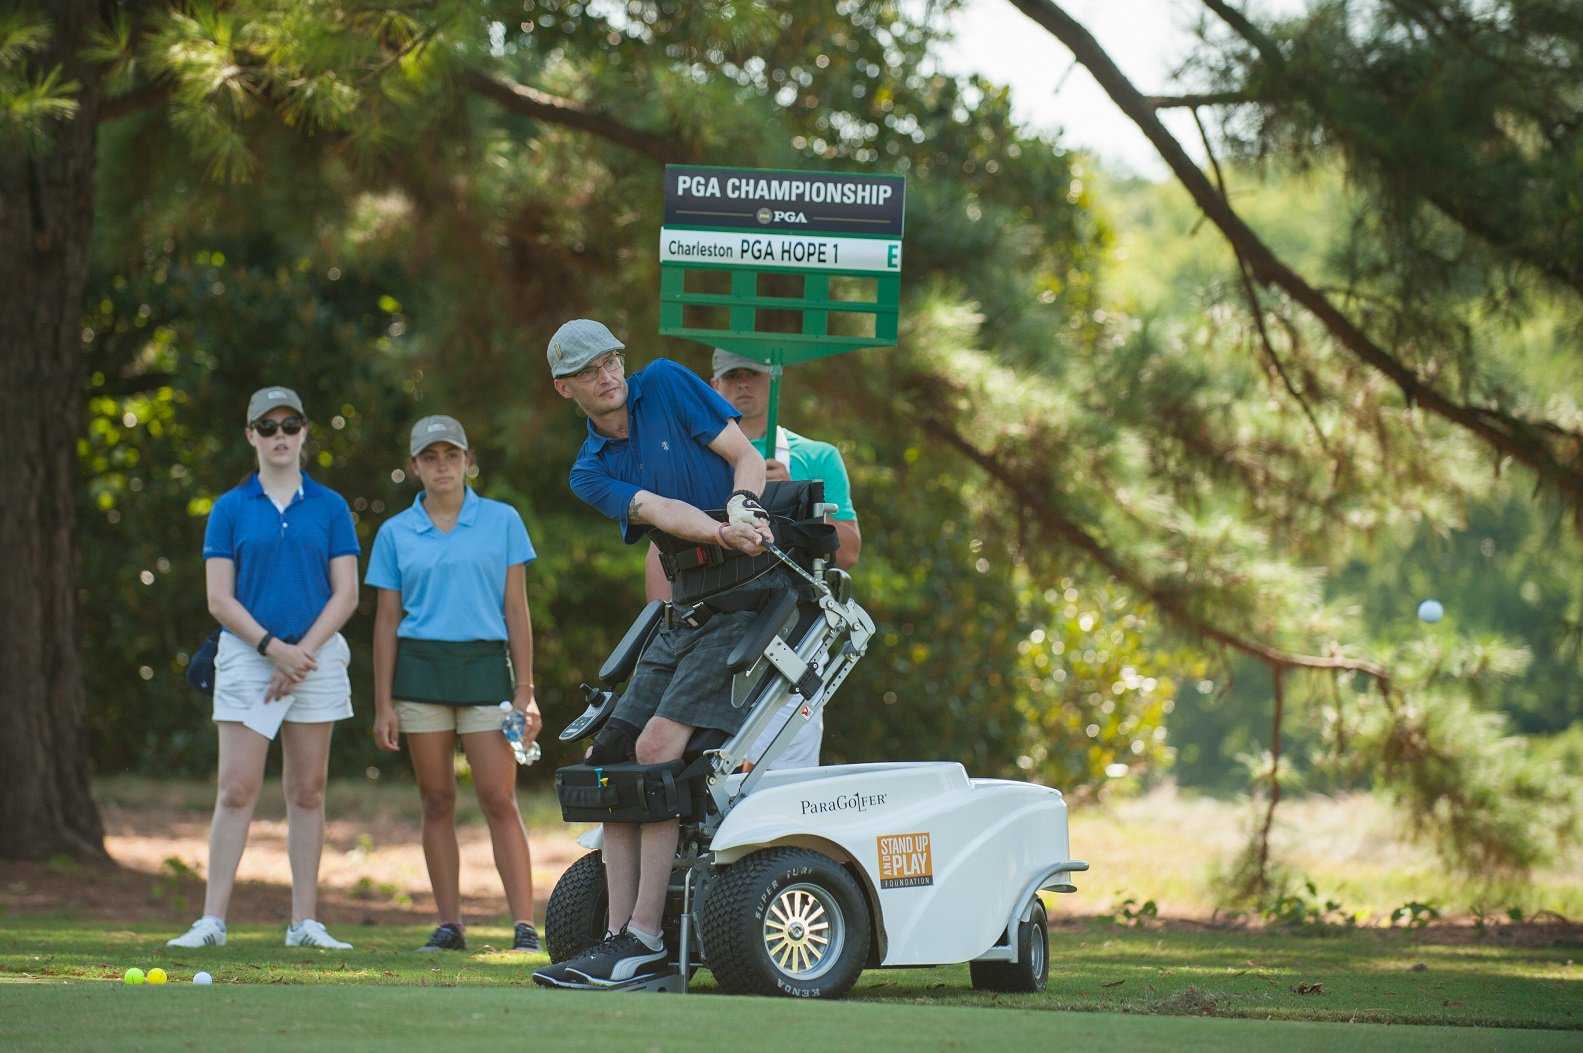 Veterans celebrate PGA HOPE's theme of healing as the Second Annual Secretary's Cup visits Charlotte Country Club